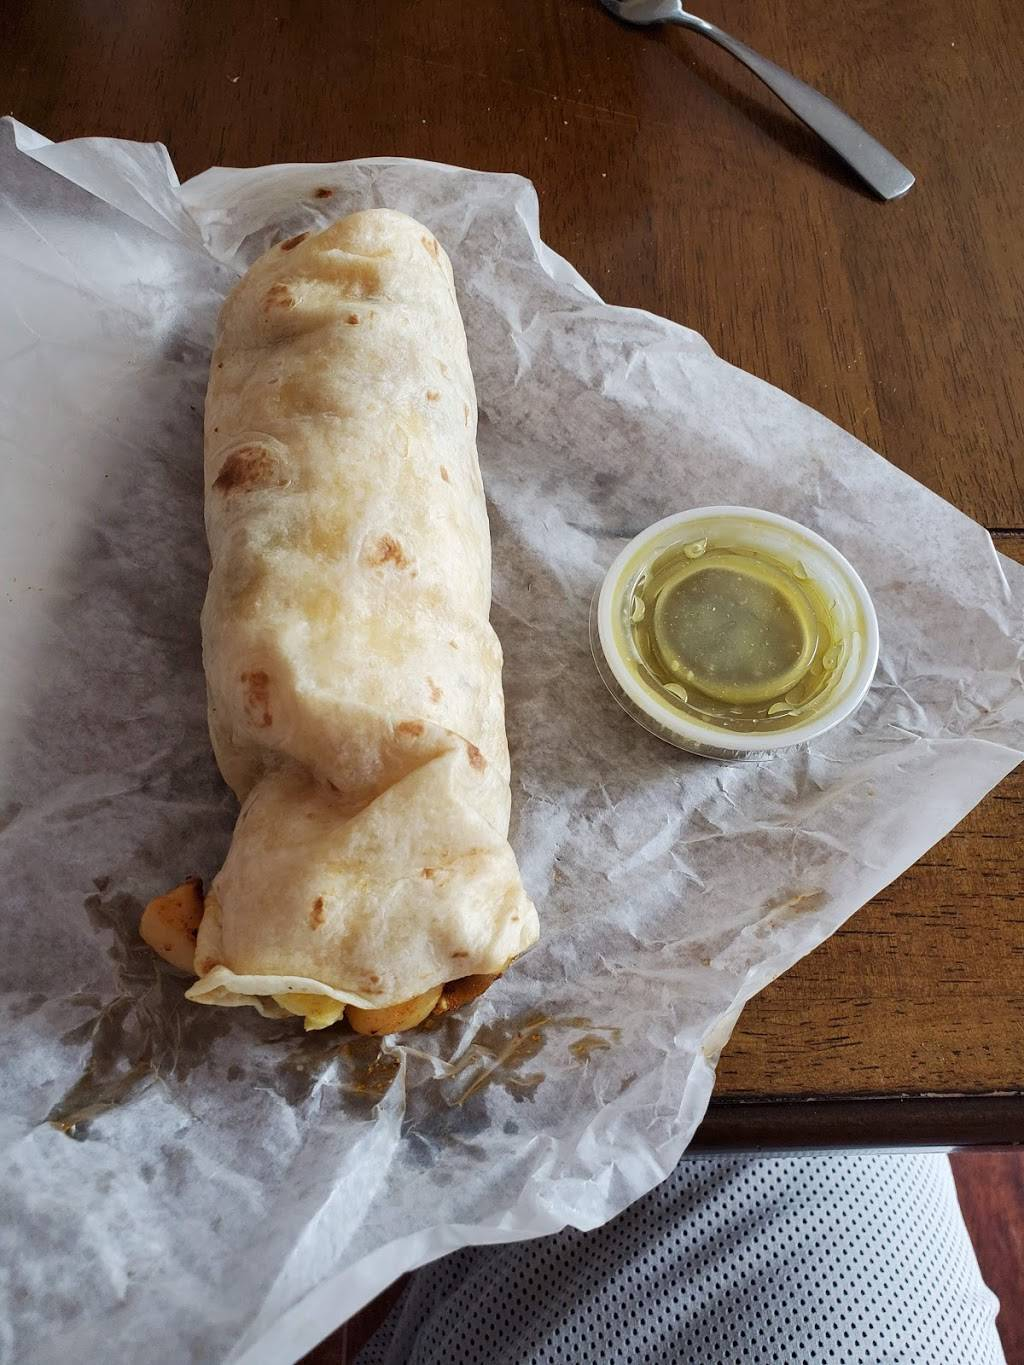 Breakfast Burrito Co. | restaurant | 4675 Lee Hwy., Cleveland, TN 37312, USA | 4234733099 OR +1 423-473-3099